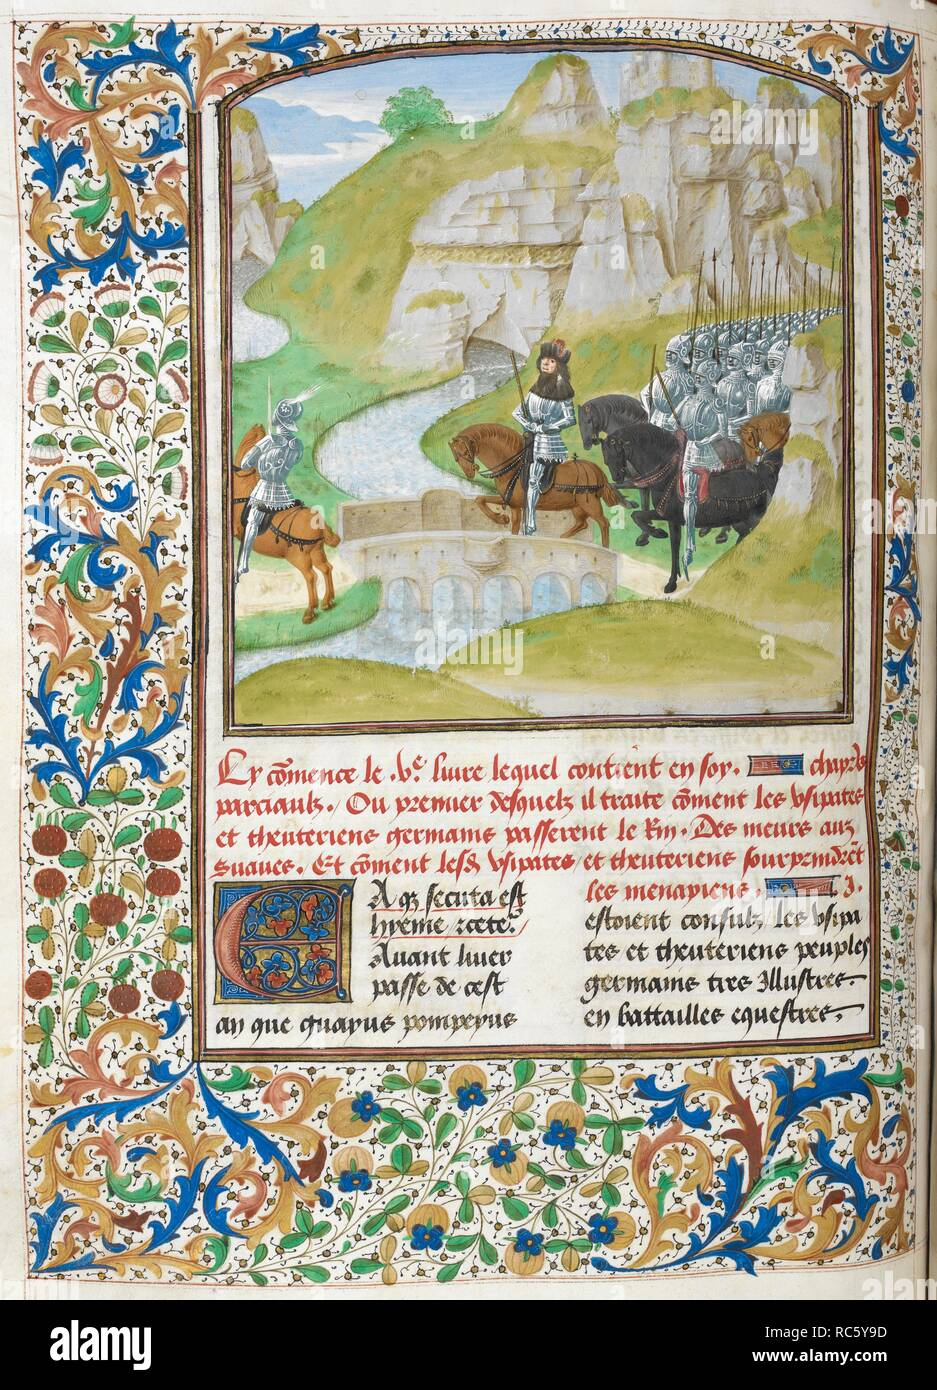 Germanic army crossing the Rhine (Book 5).  Army crossing a river by a bridge, with landscape in the background. Text beginning with decorated initial 'E'. Caesar, translated by Jan Du Quesne (or Jean Duchesne), Bellum Gallicum ( Les commentaires de Cesar ). 1473-1476. Source: Royal 16 G. VIII, f.147v. Language: French. Author: JULIUS CAESAR. Du Quesne, Jehan. Master of the London Wavrin. - Stock Image